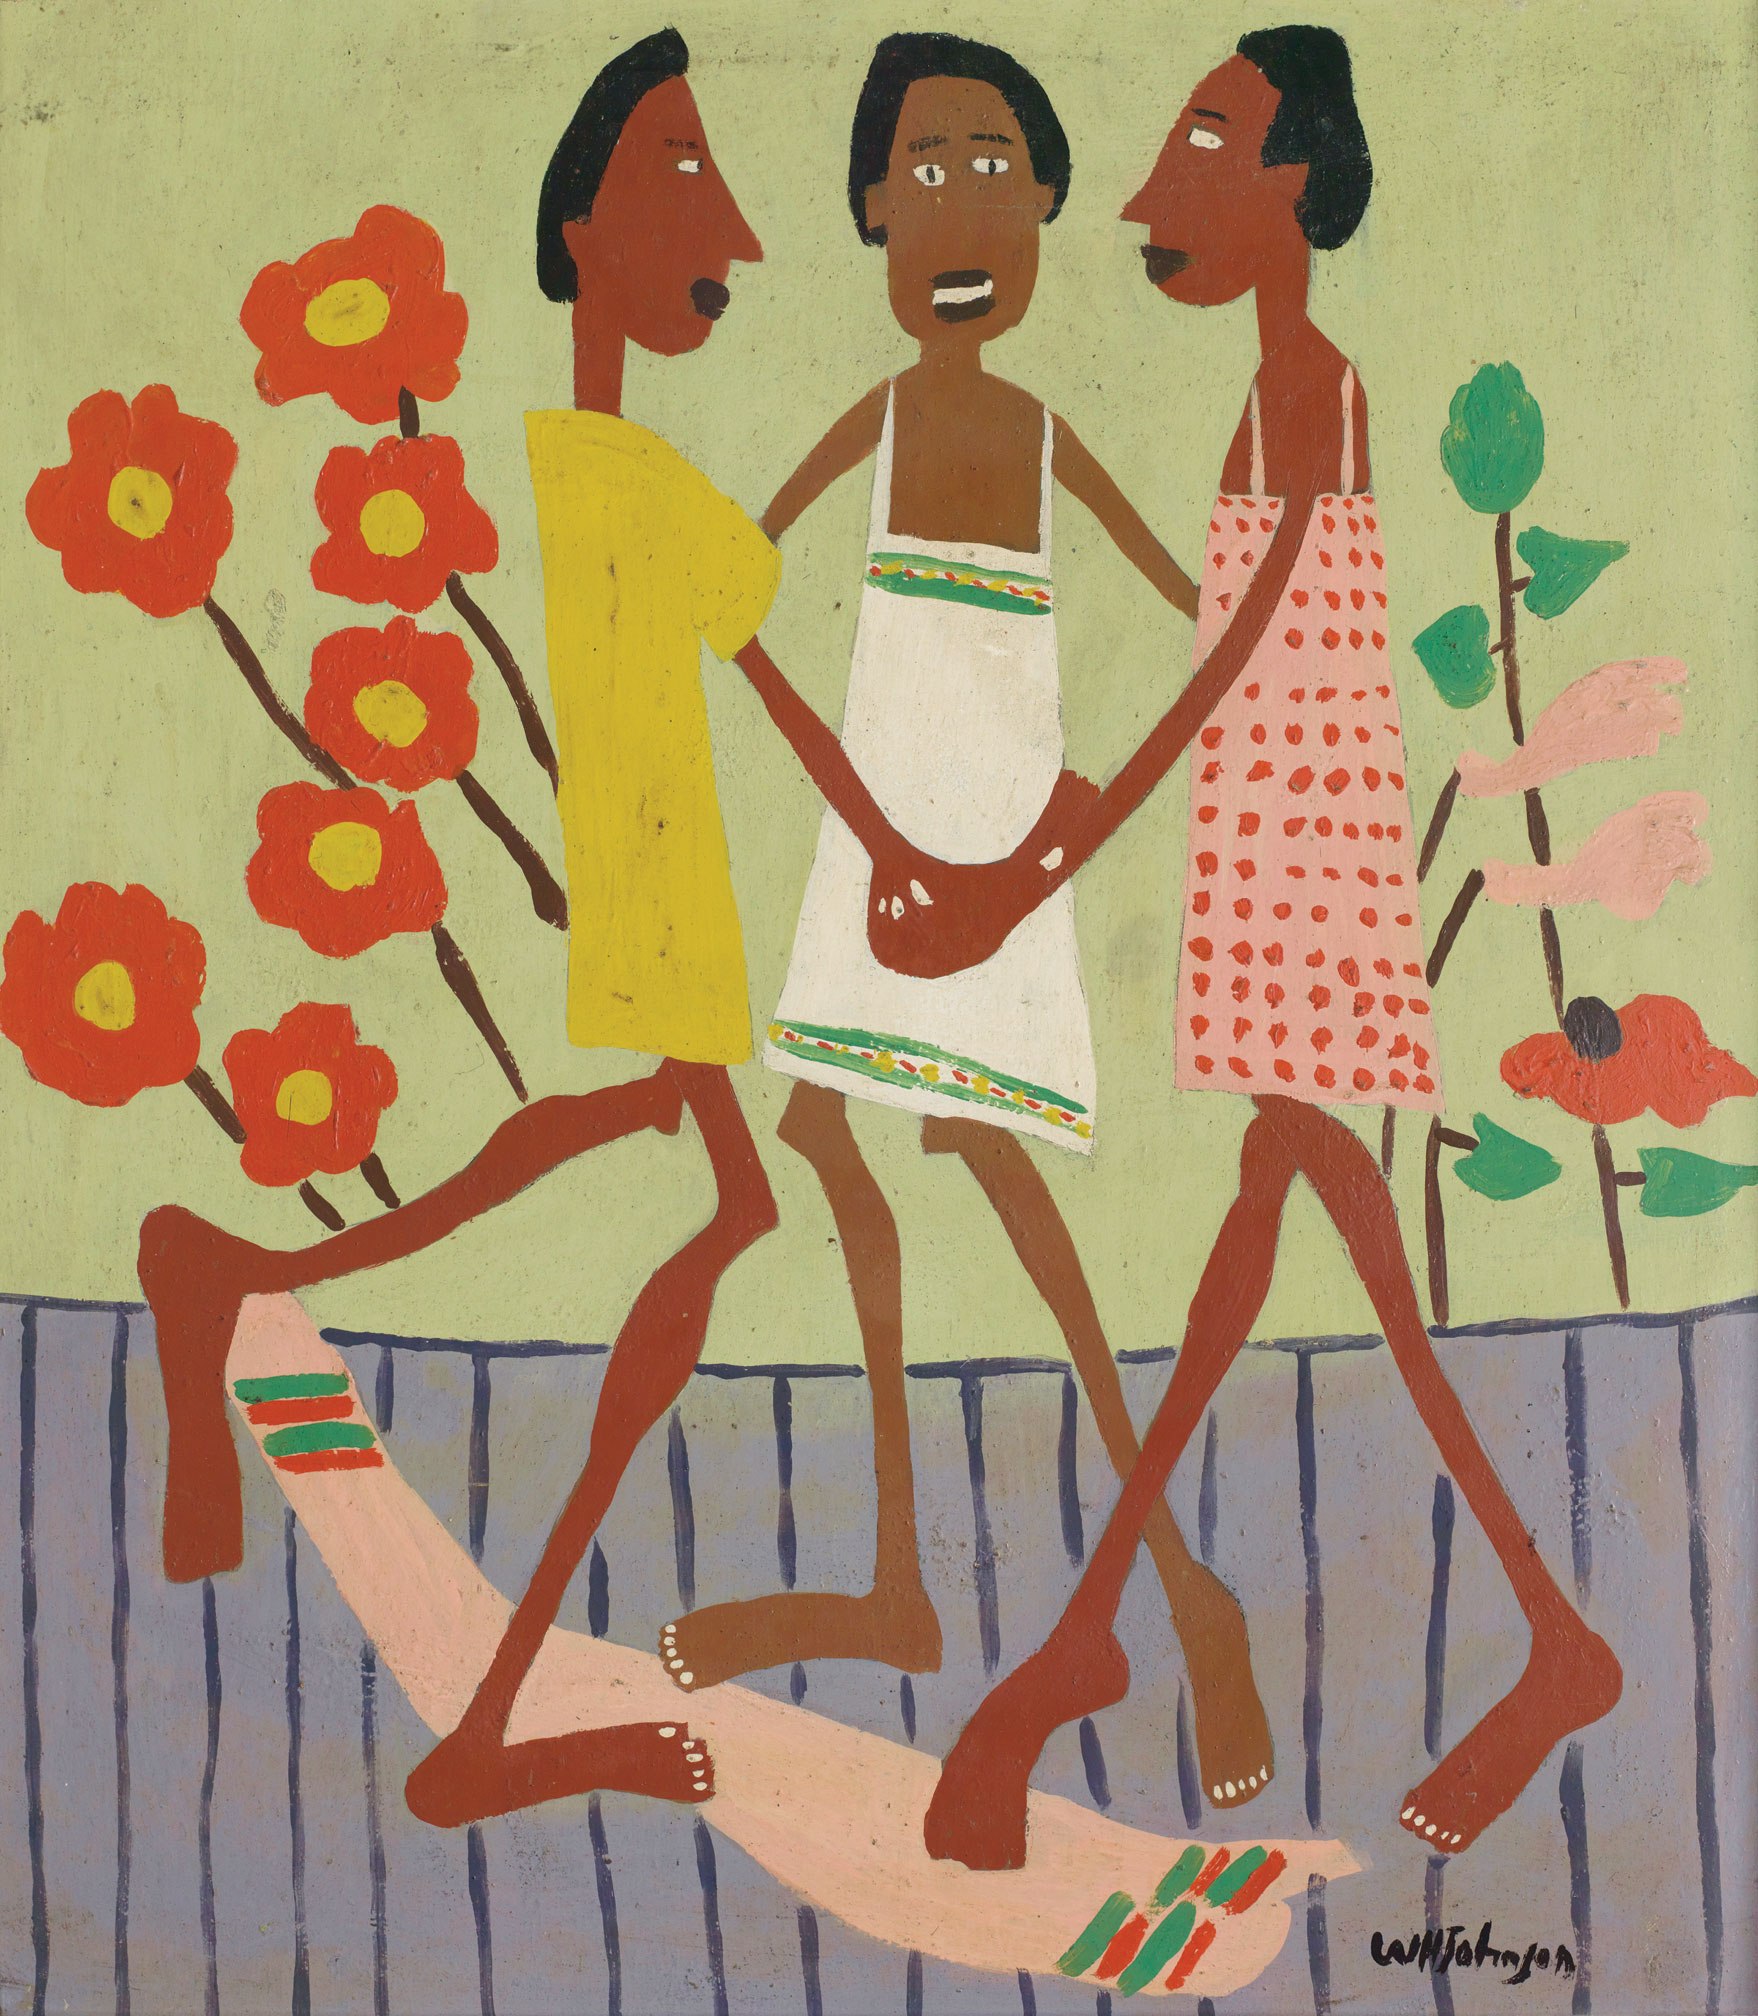 'Ring Around the Rosey' 1944 by William H. Johnson's. Part of the collection of Morgan State University.